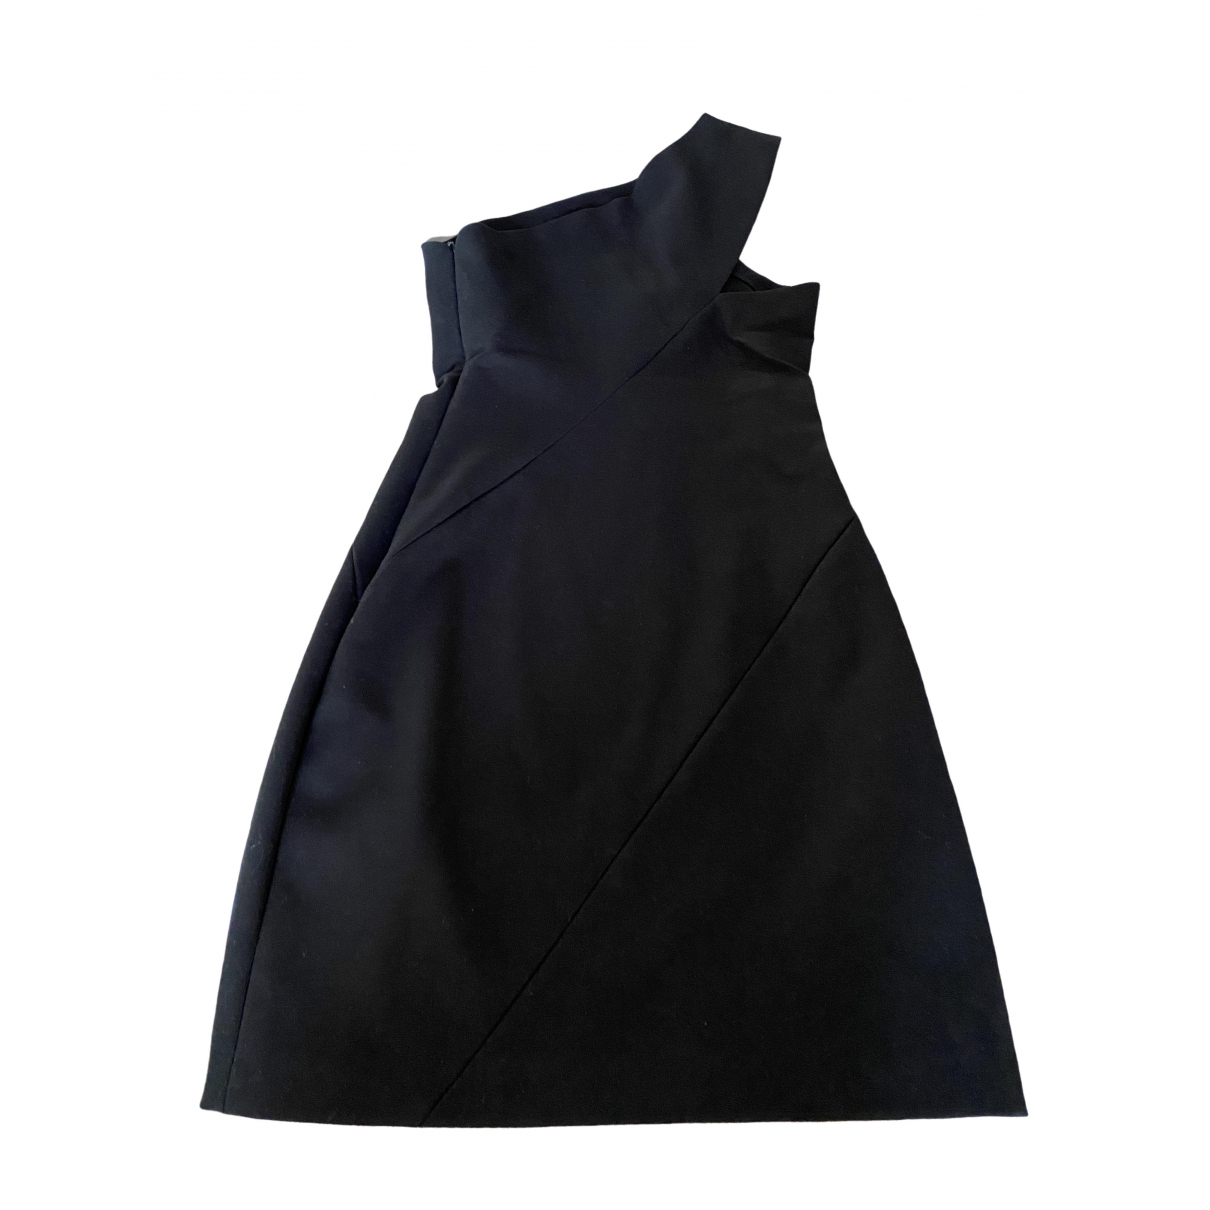 Sandro Spring Summer 2019 Black Cotton - elasthane dress for Women 1 0-5